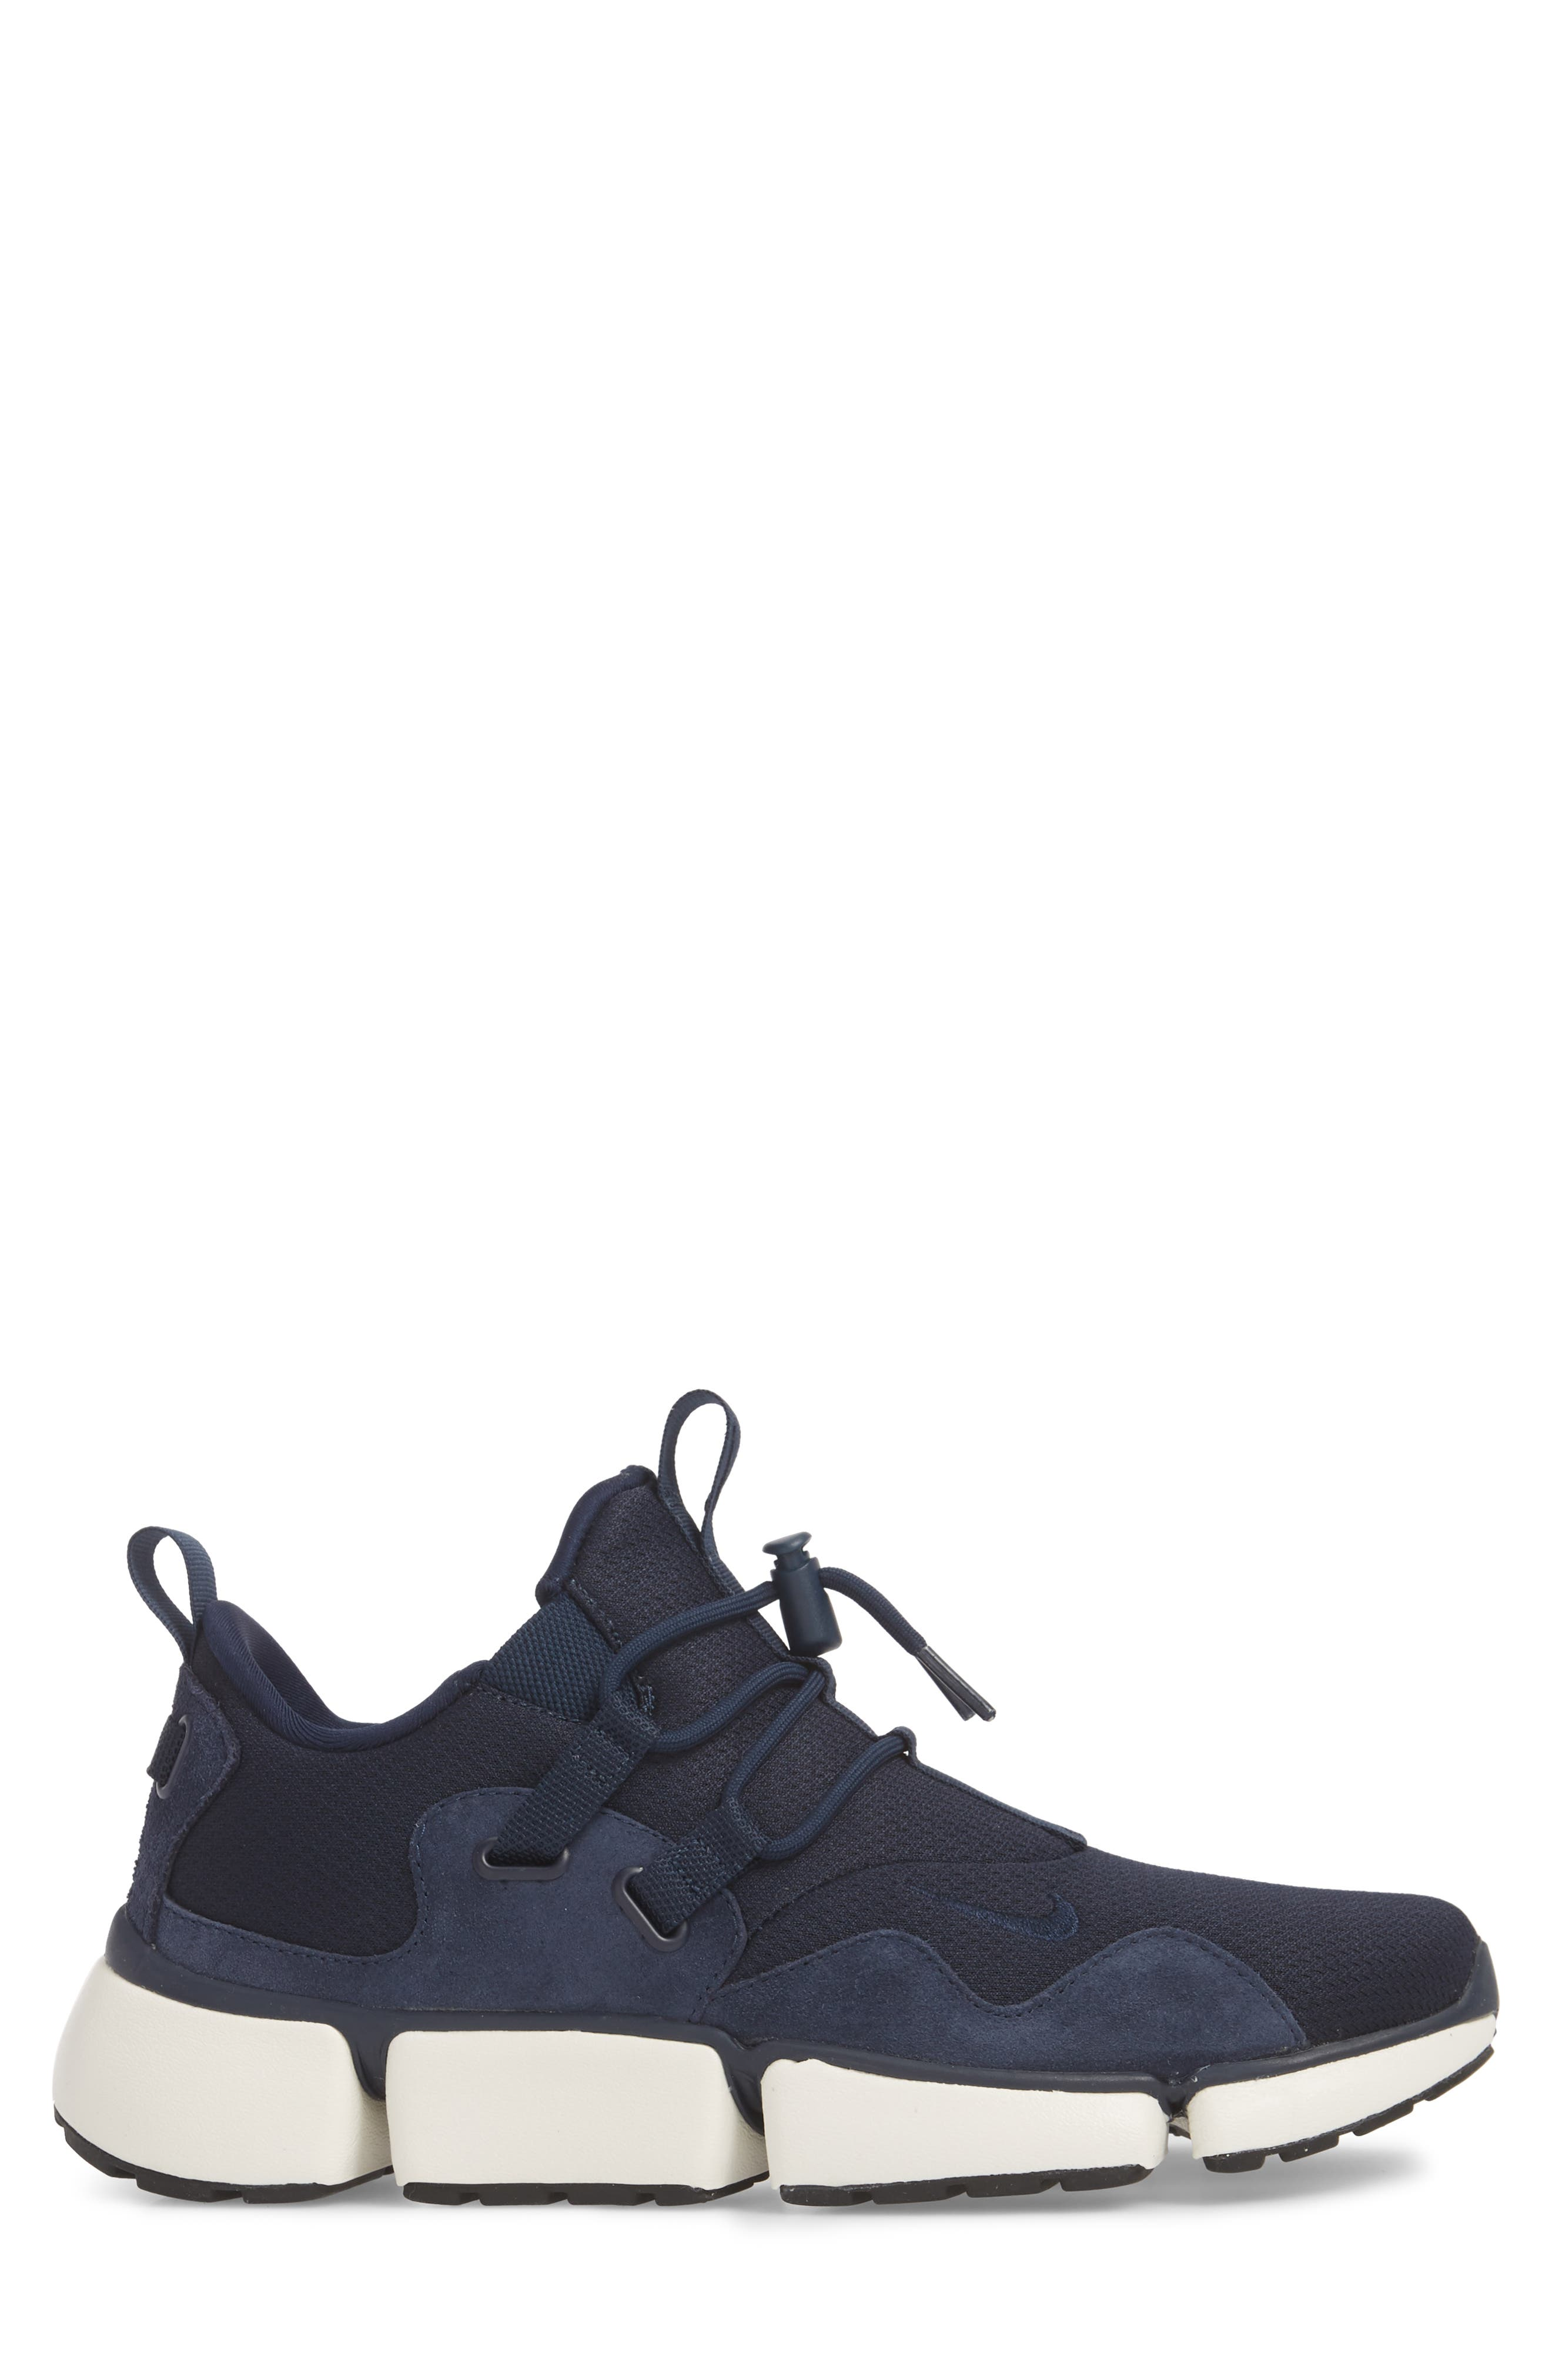 PocketKnife DM SE Sneaker,                             Alternate thumbnail 3, color,                             400